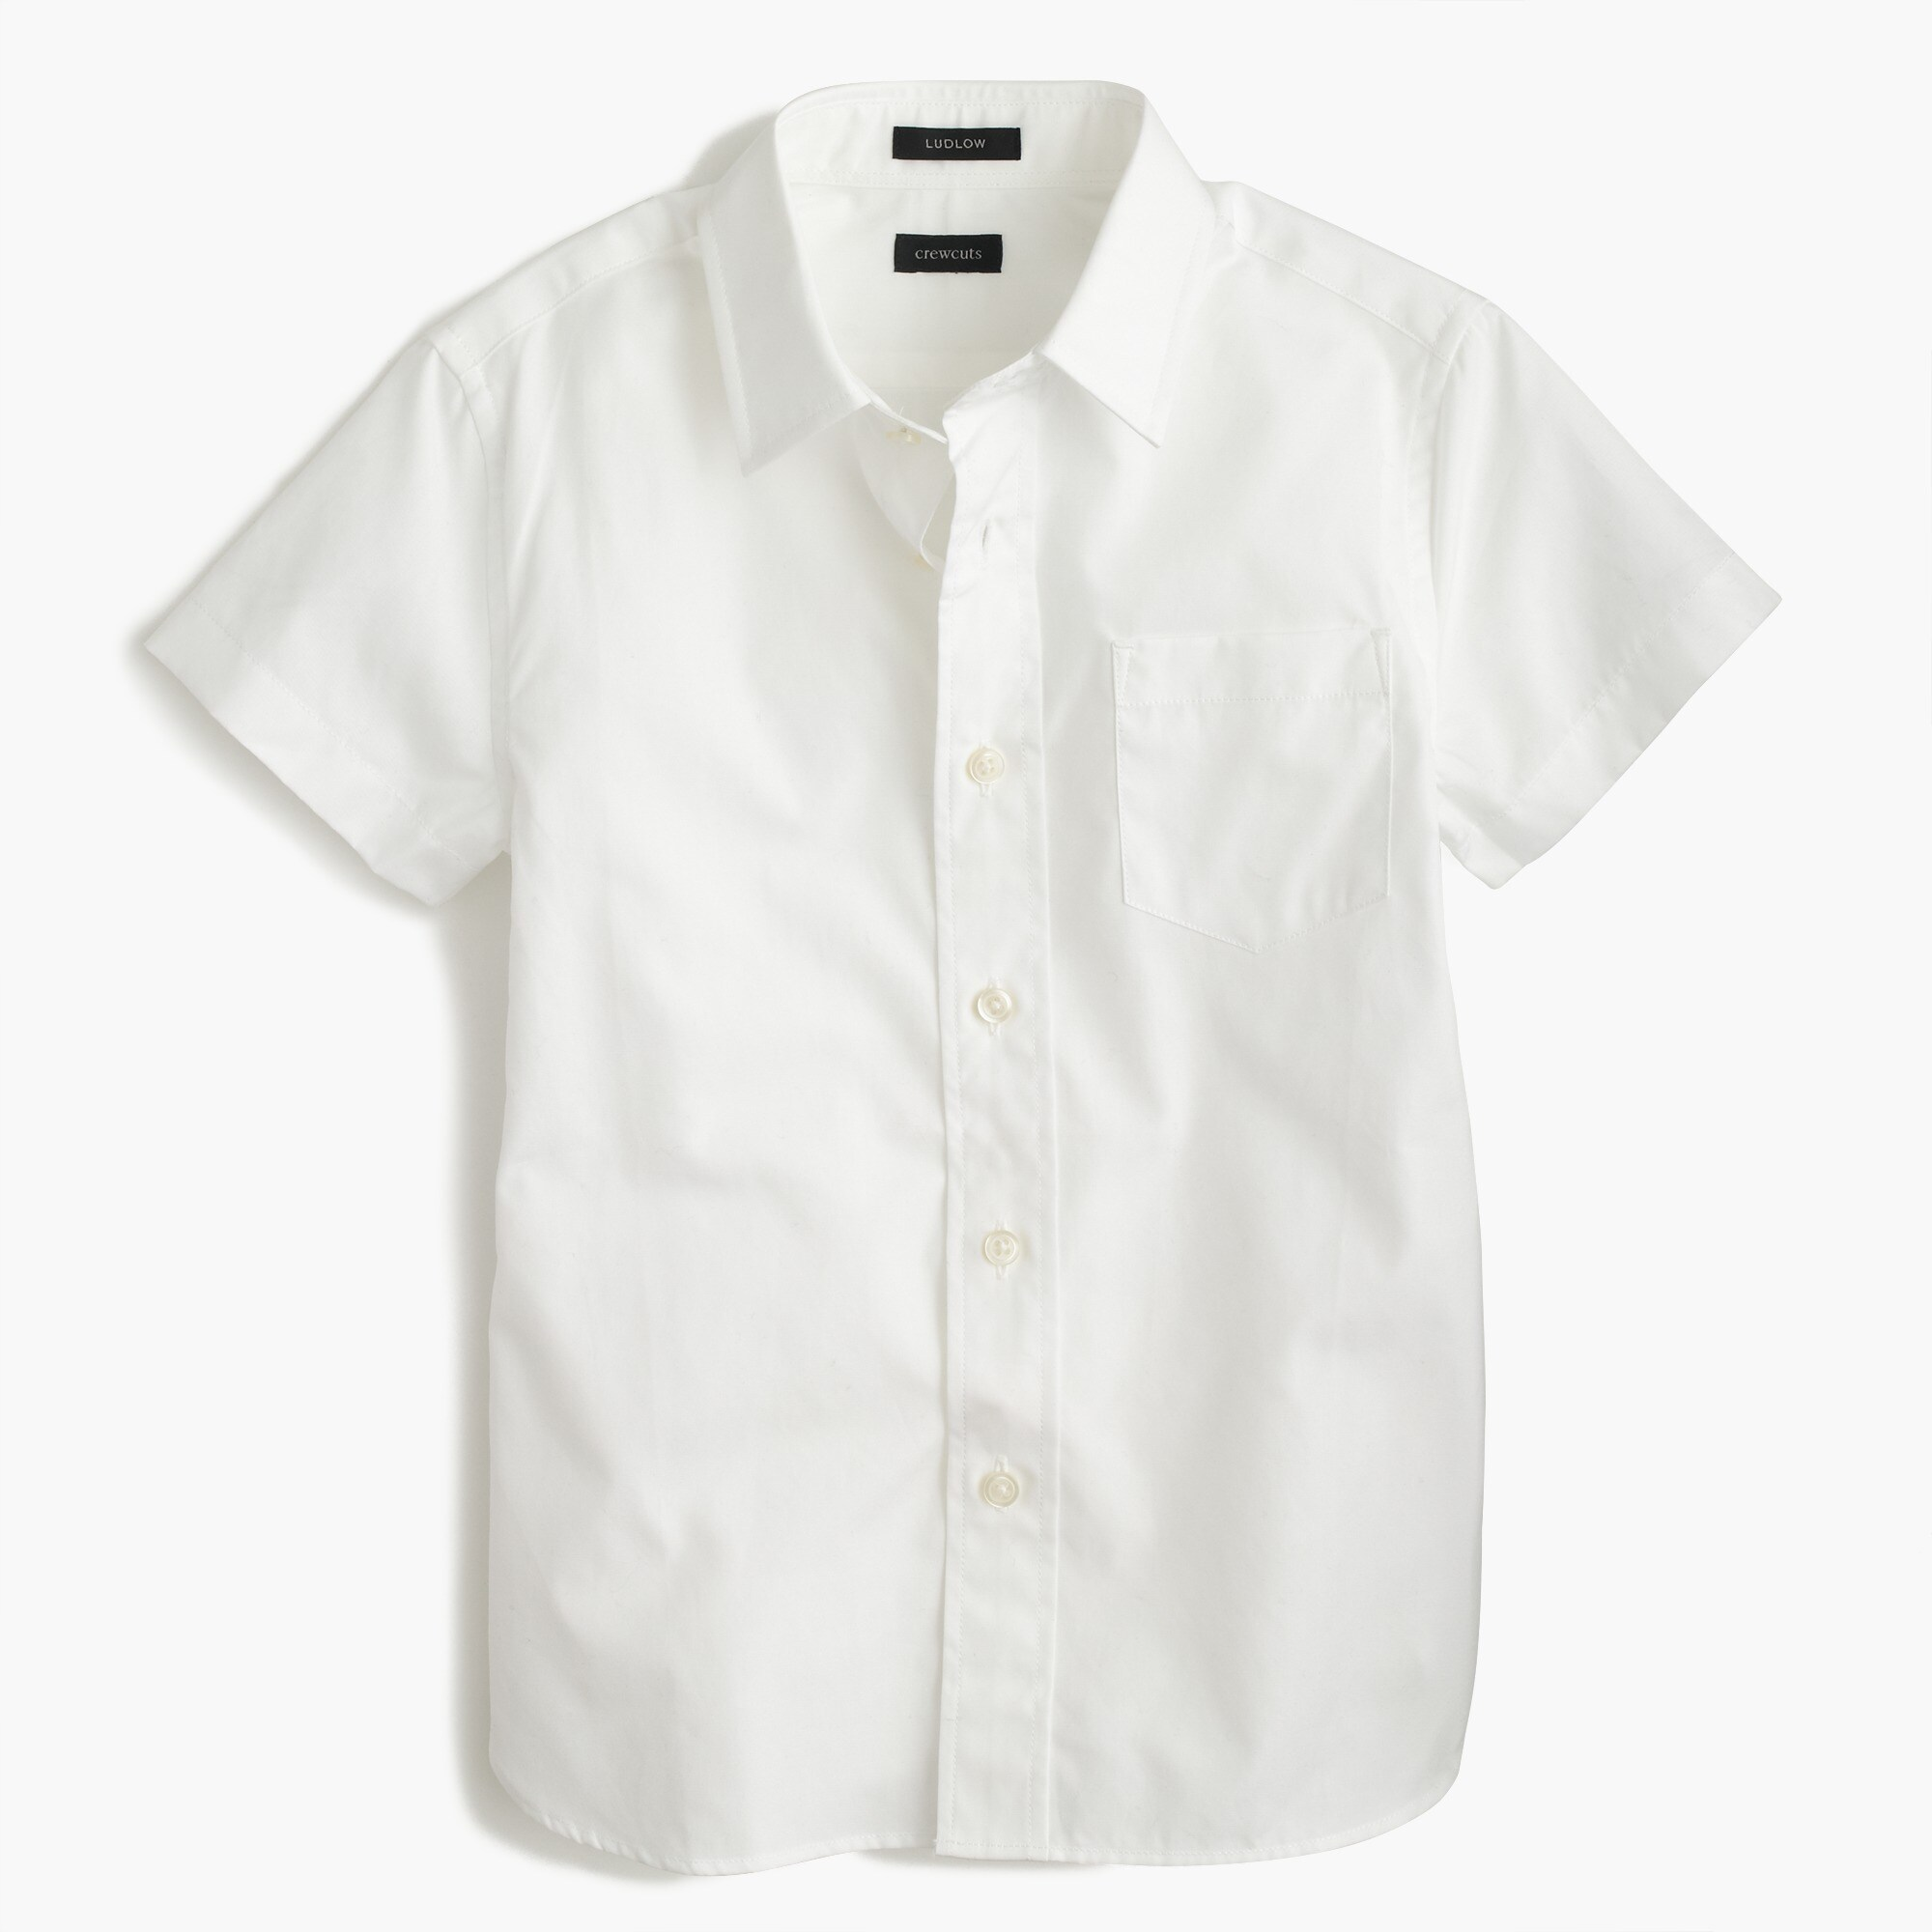 Image 3 for Boys' short-sleeve Ludlow shirt